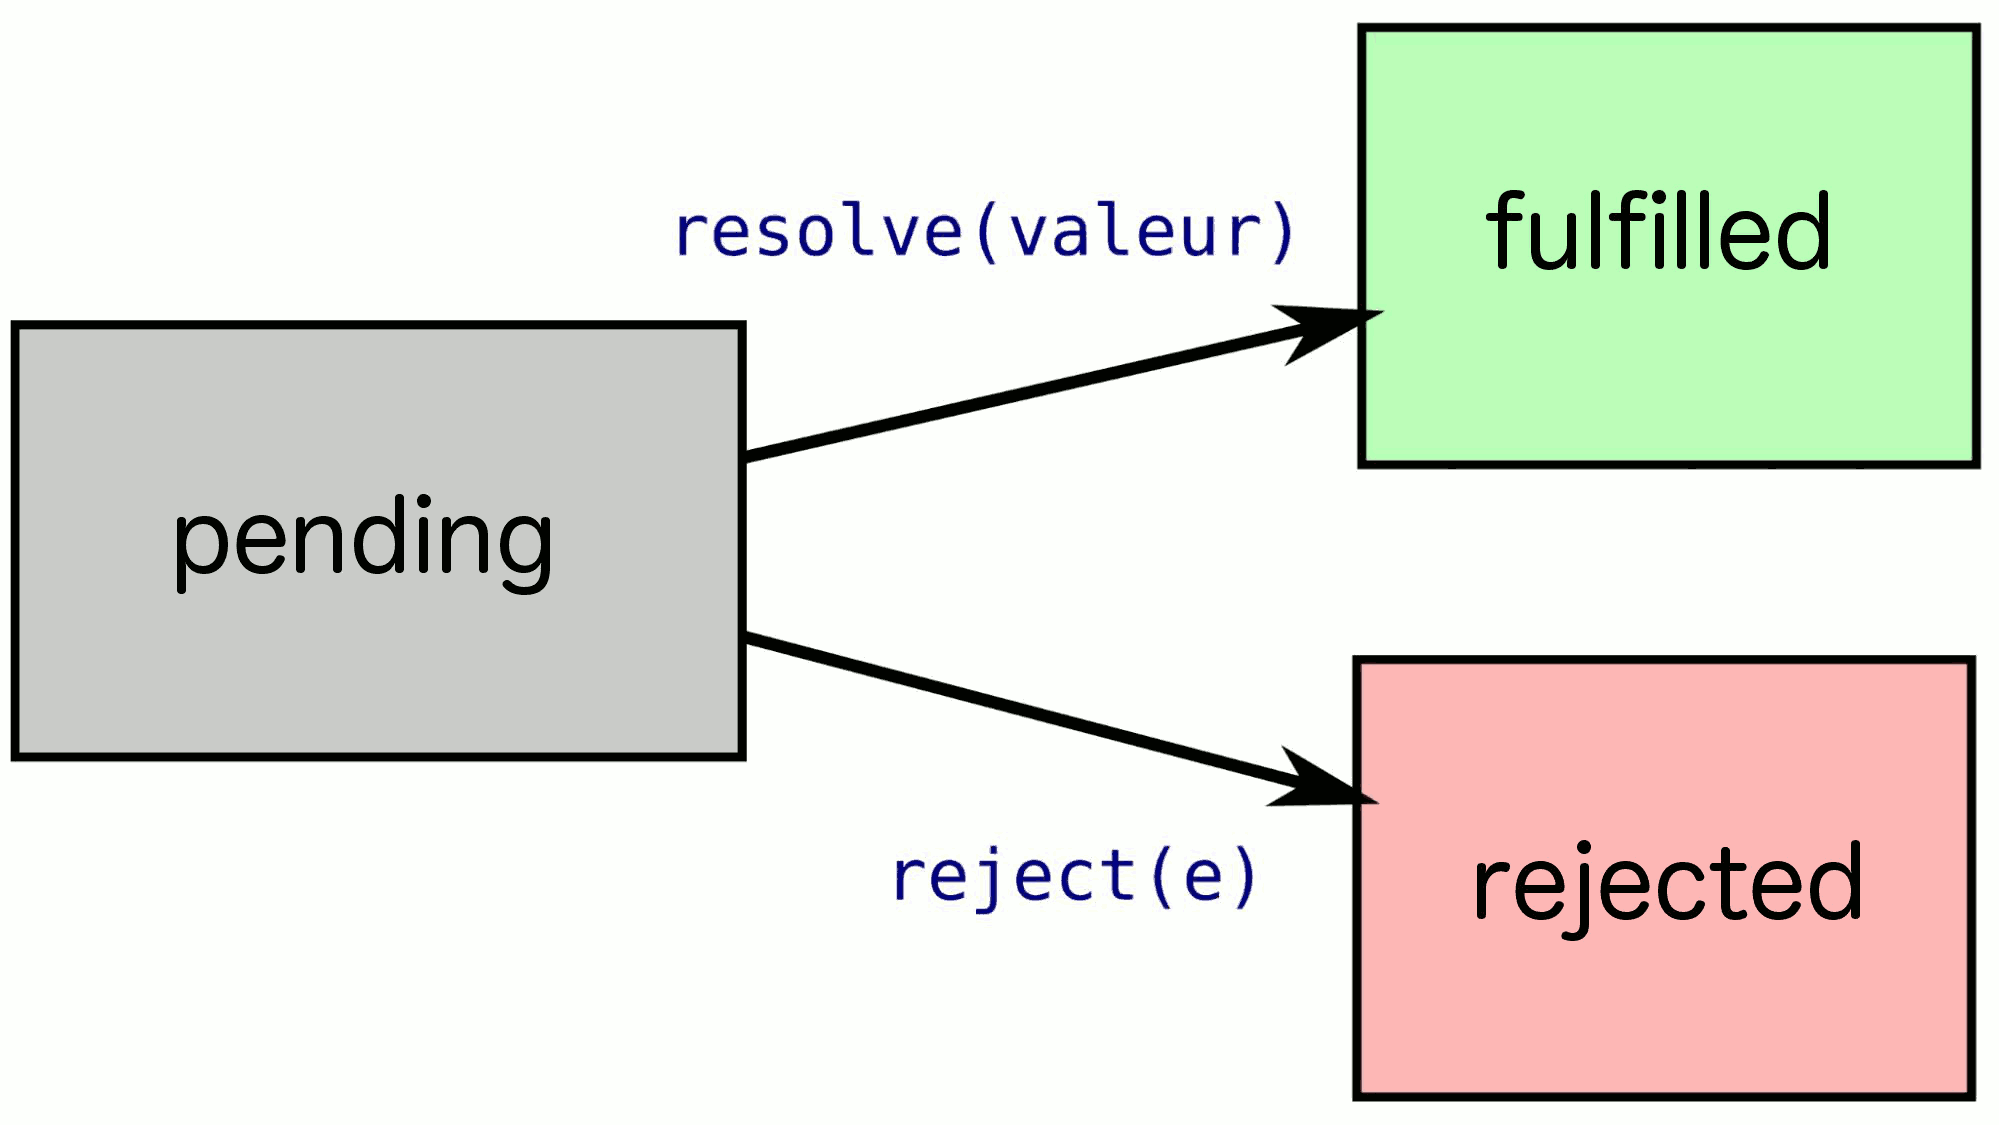 Schema representing Promise states: pending -> fulfilled|rejected